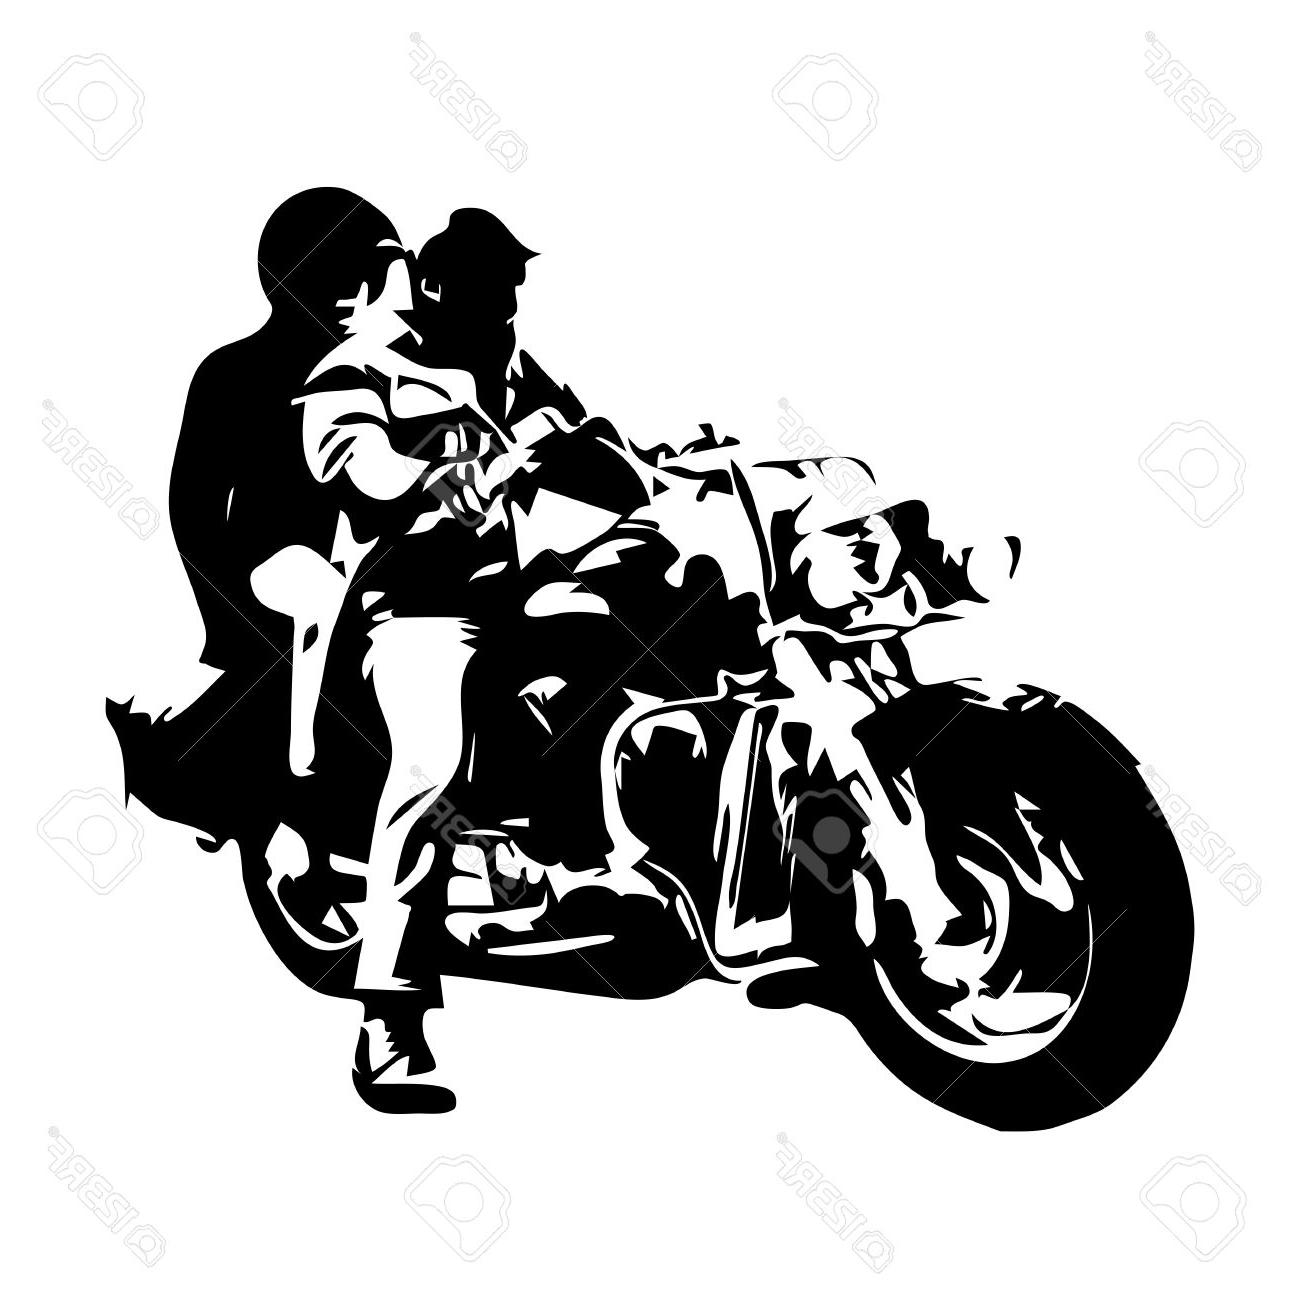 1300x1300 Best 15 Motorcycle Chopper Couple On Motorbike Vector Drawing